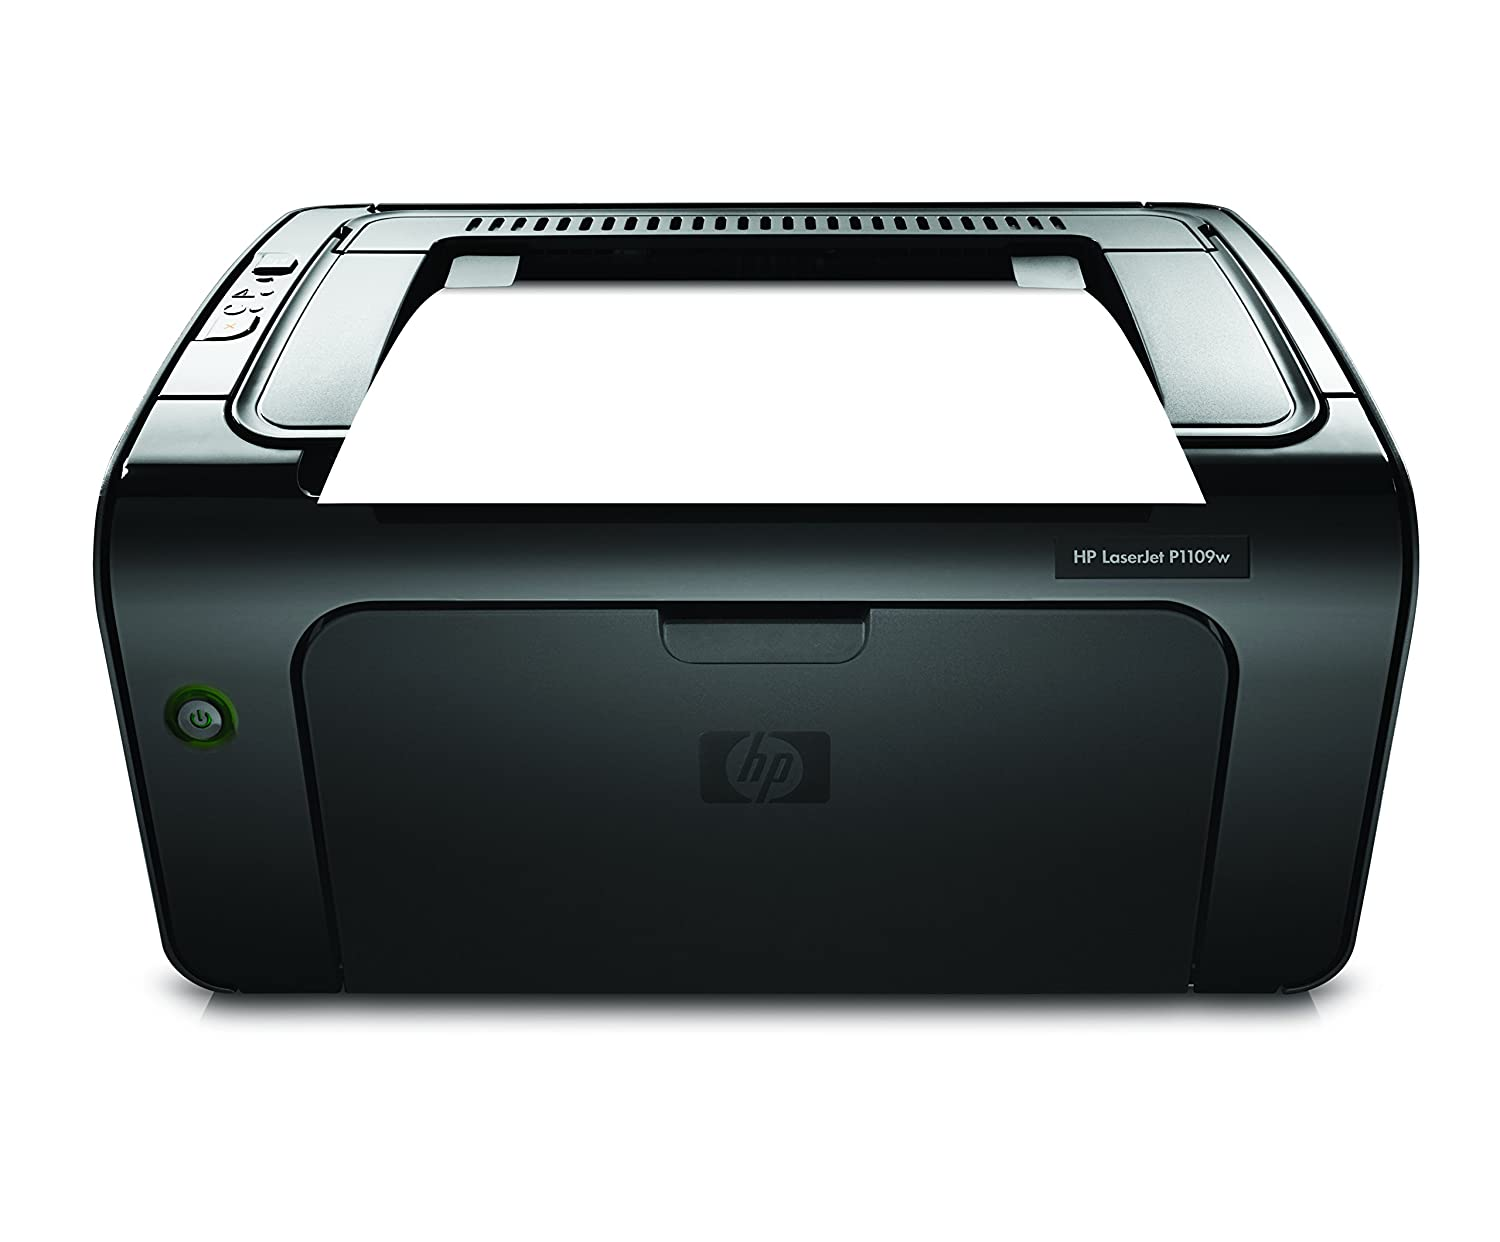 HP Laserjet Pro P1109w Monochrome Printer - Best Printer for Printing Checks